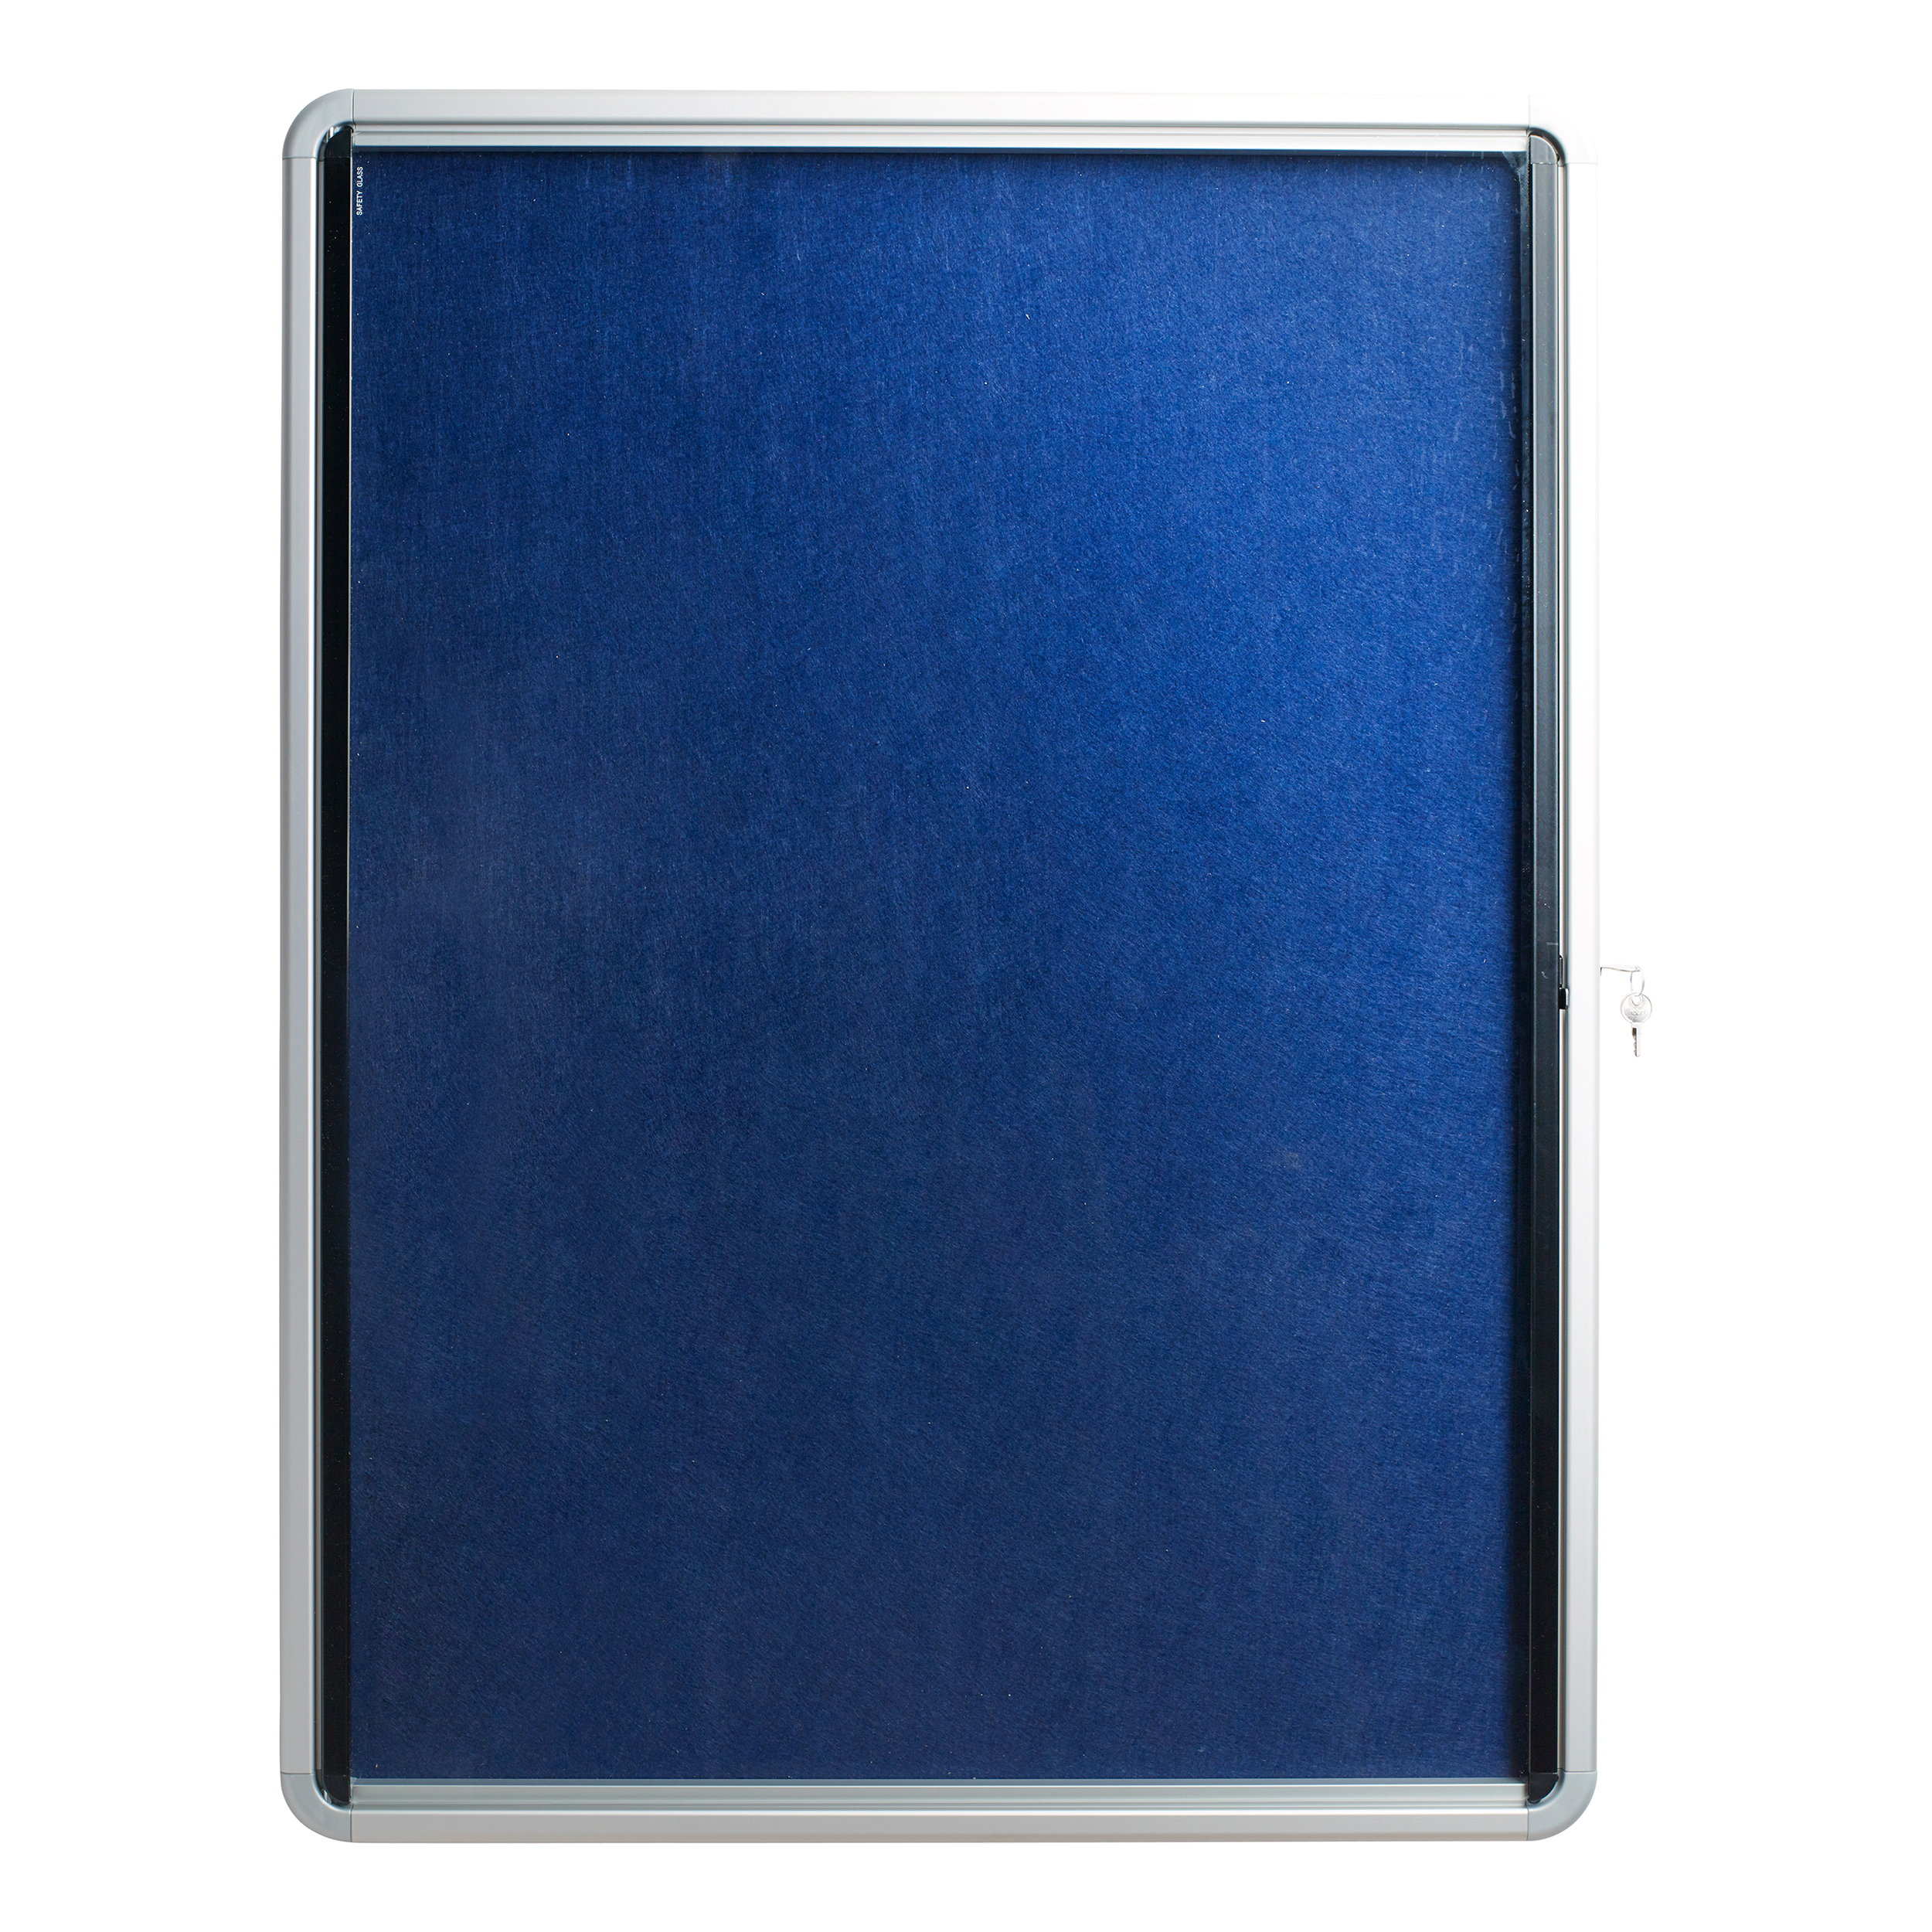 Glazed 5 Star Glazed Noticeboard with Hinged Door Locking Alumin Frame Blue Felt 750x10000mm